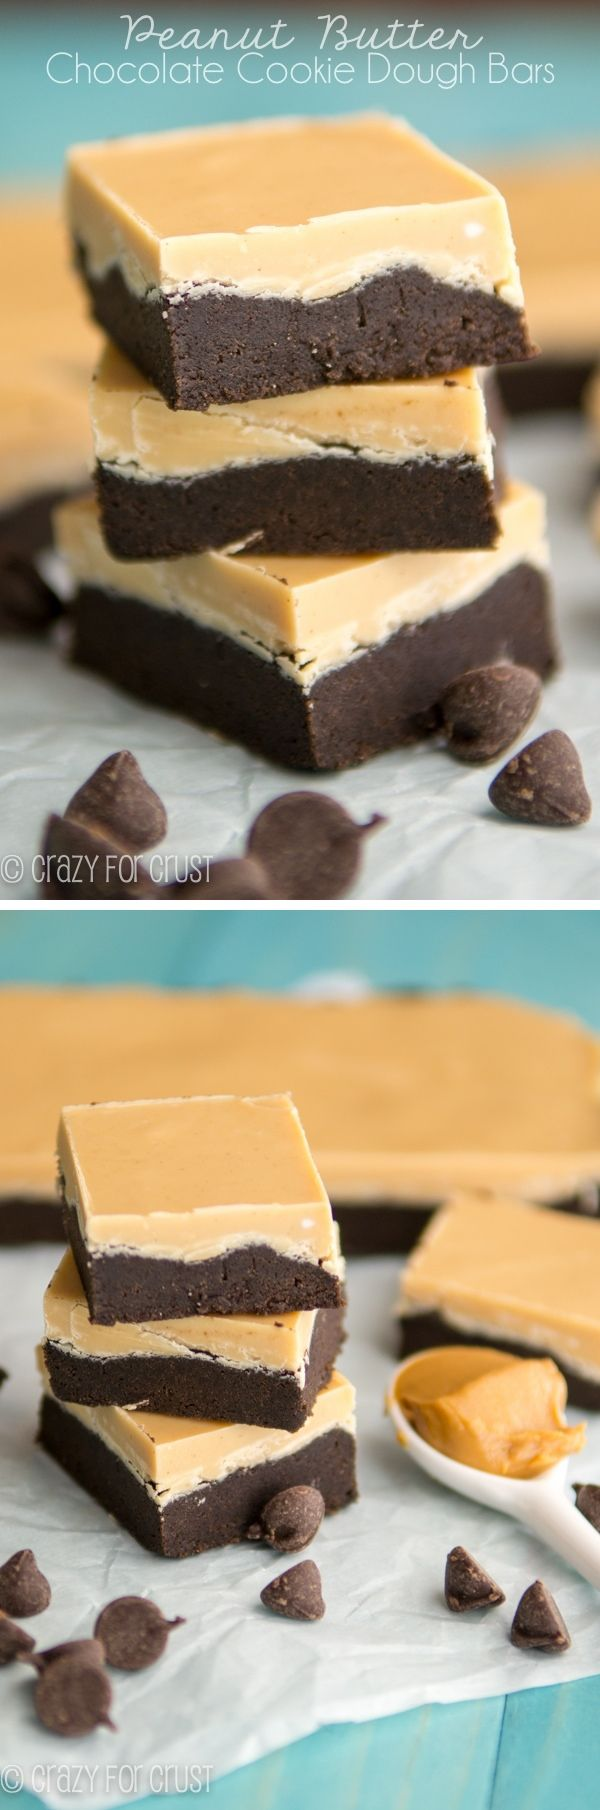 Peanut Butter Chocolate Cookie Dough Bars